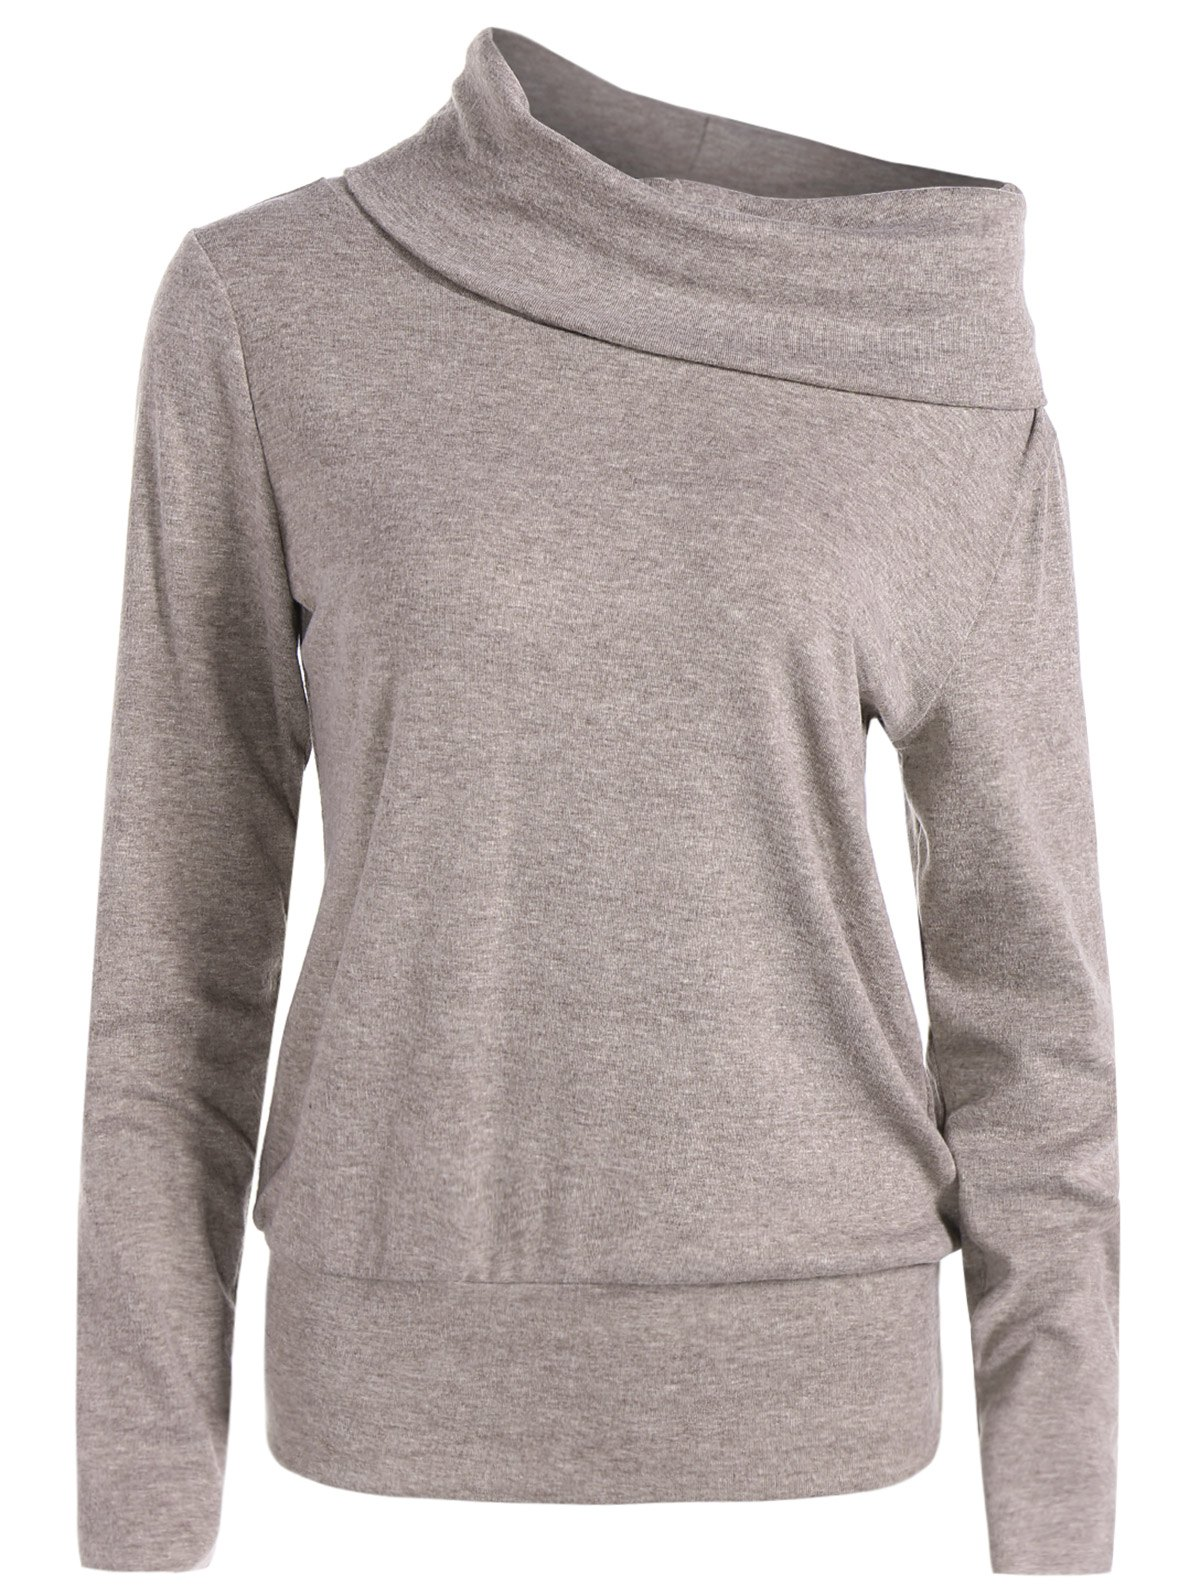 High Neck Long Sleeve Sweatshirt - SANDY BEIGE 2XL